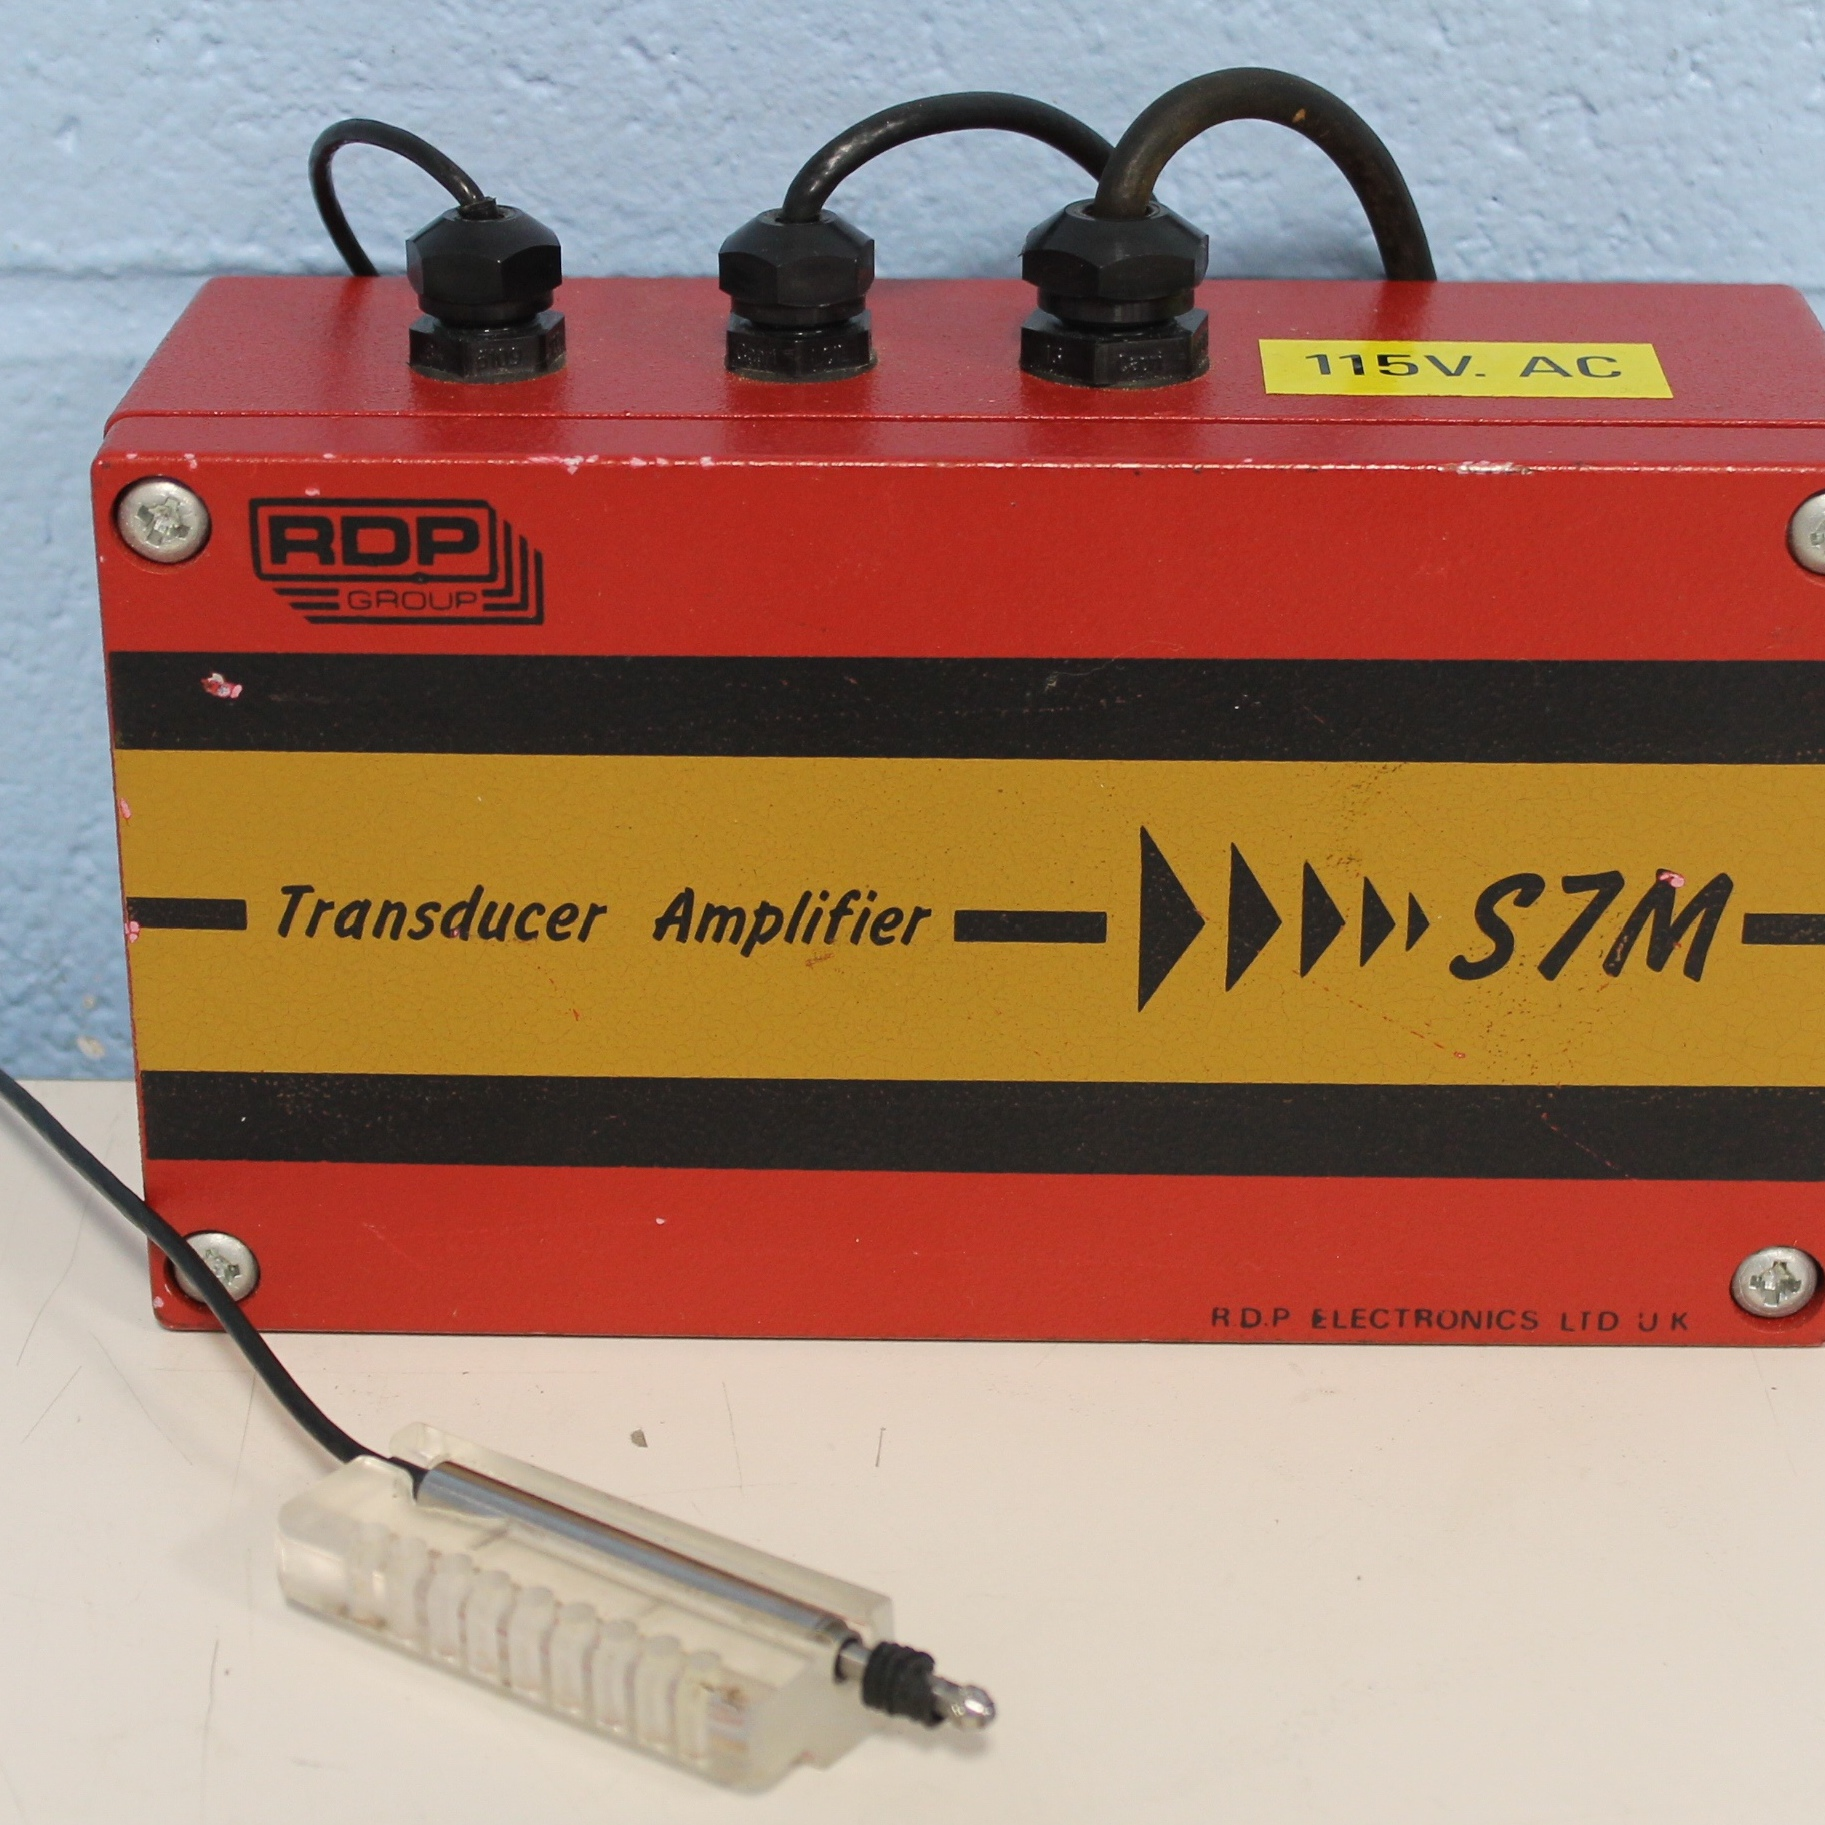 RDP ELECTRONICS Transducer Amplifier S7M Model 2B Image